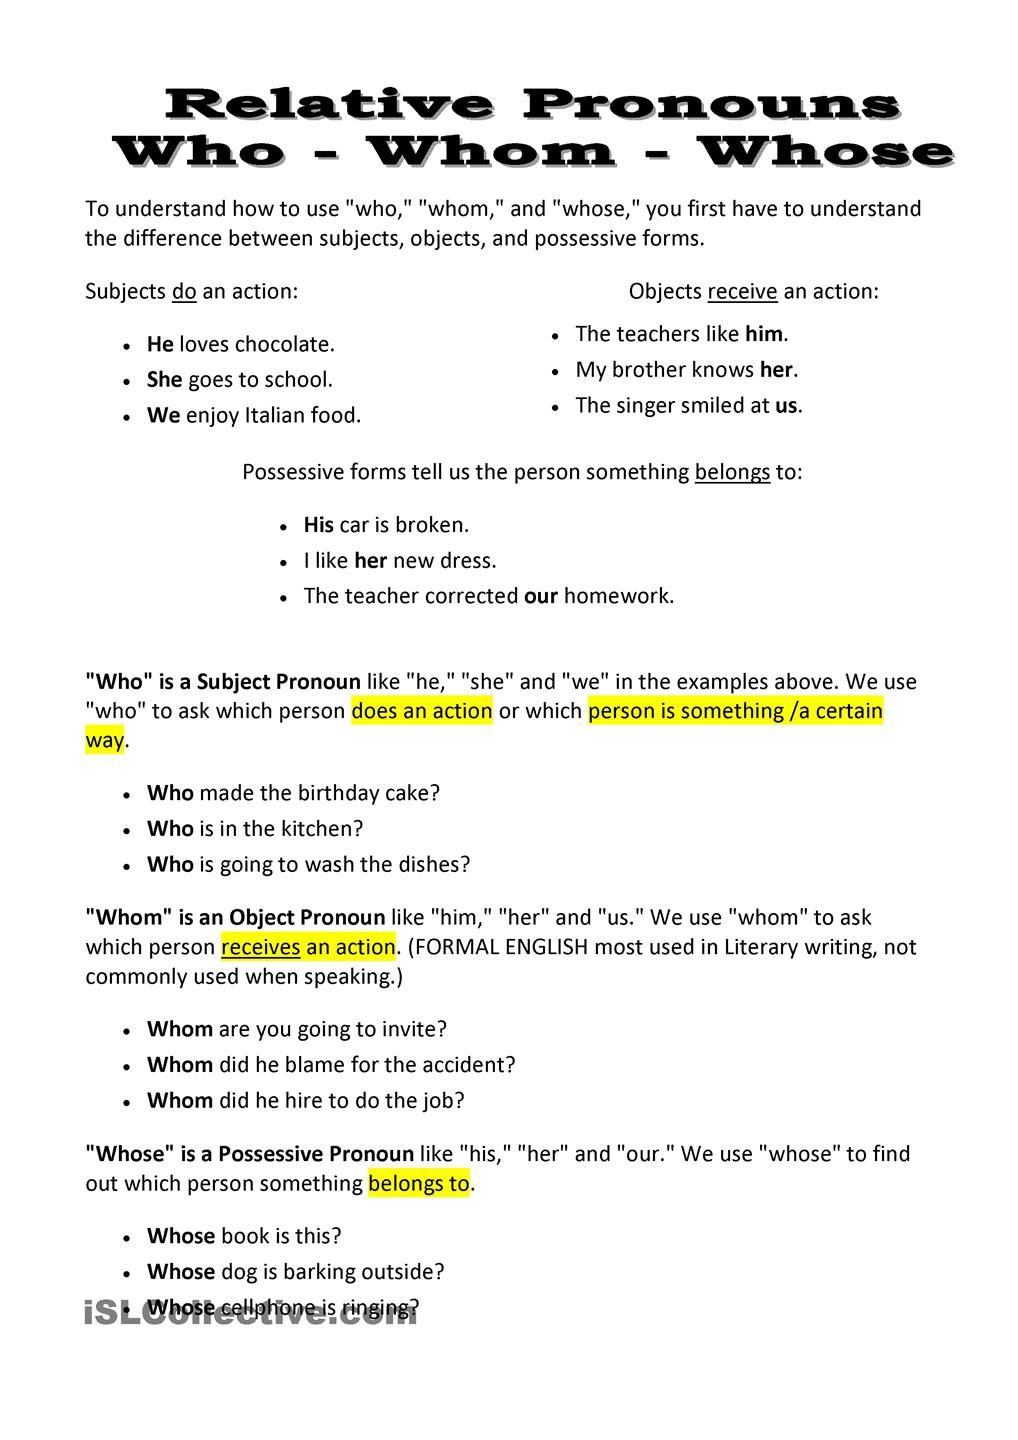 worksheet How Chocolate Is Made Worksheet pin by helenseasyenglish on teaching english pinterest relative pronouns who whom whose worksheet free esl printable worksheets made teachers